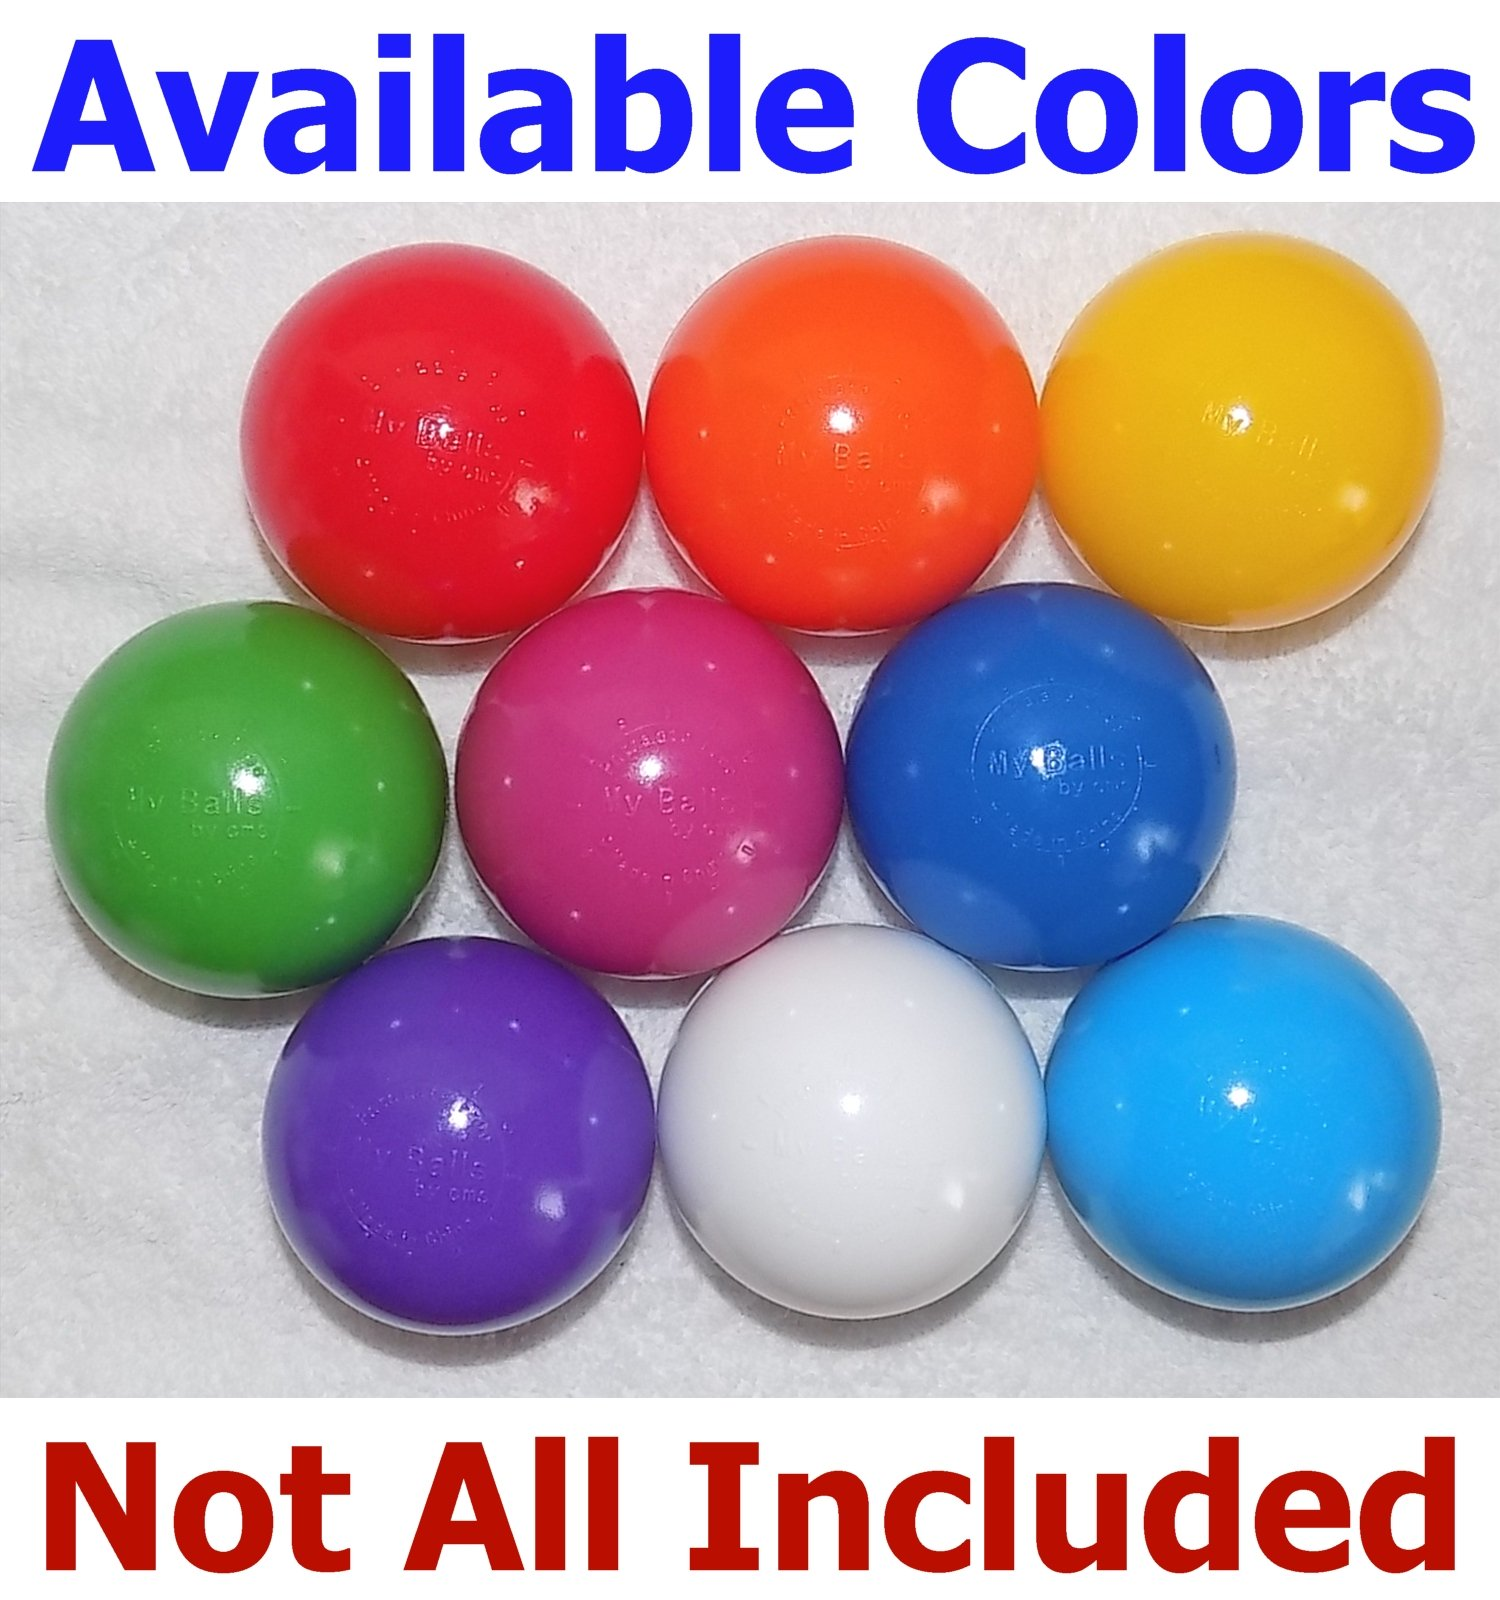 My Balls Pack of 500 Jumbo 3'' Yellow Color Commercial Grade Ball Pit Balls - Air-Filled Crush-Proof Phthalate Free BPA Free PVC Free Non-Toxic Non-Recycled Plastic by My Balls by CMS (Image #5)